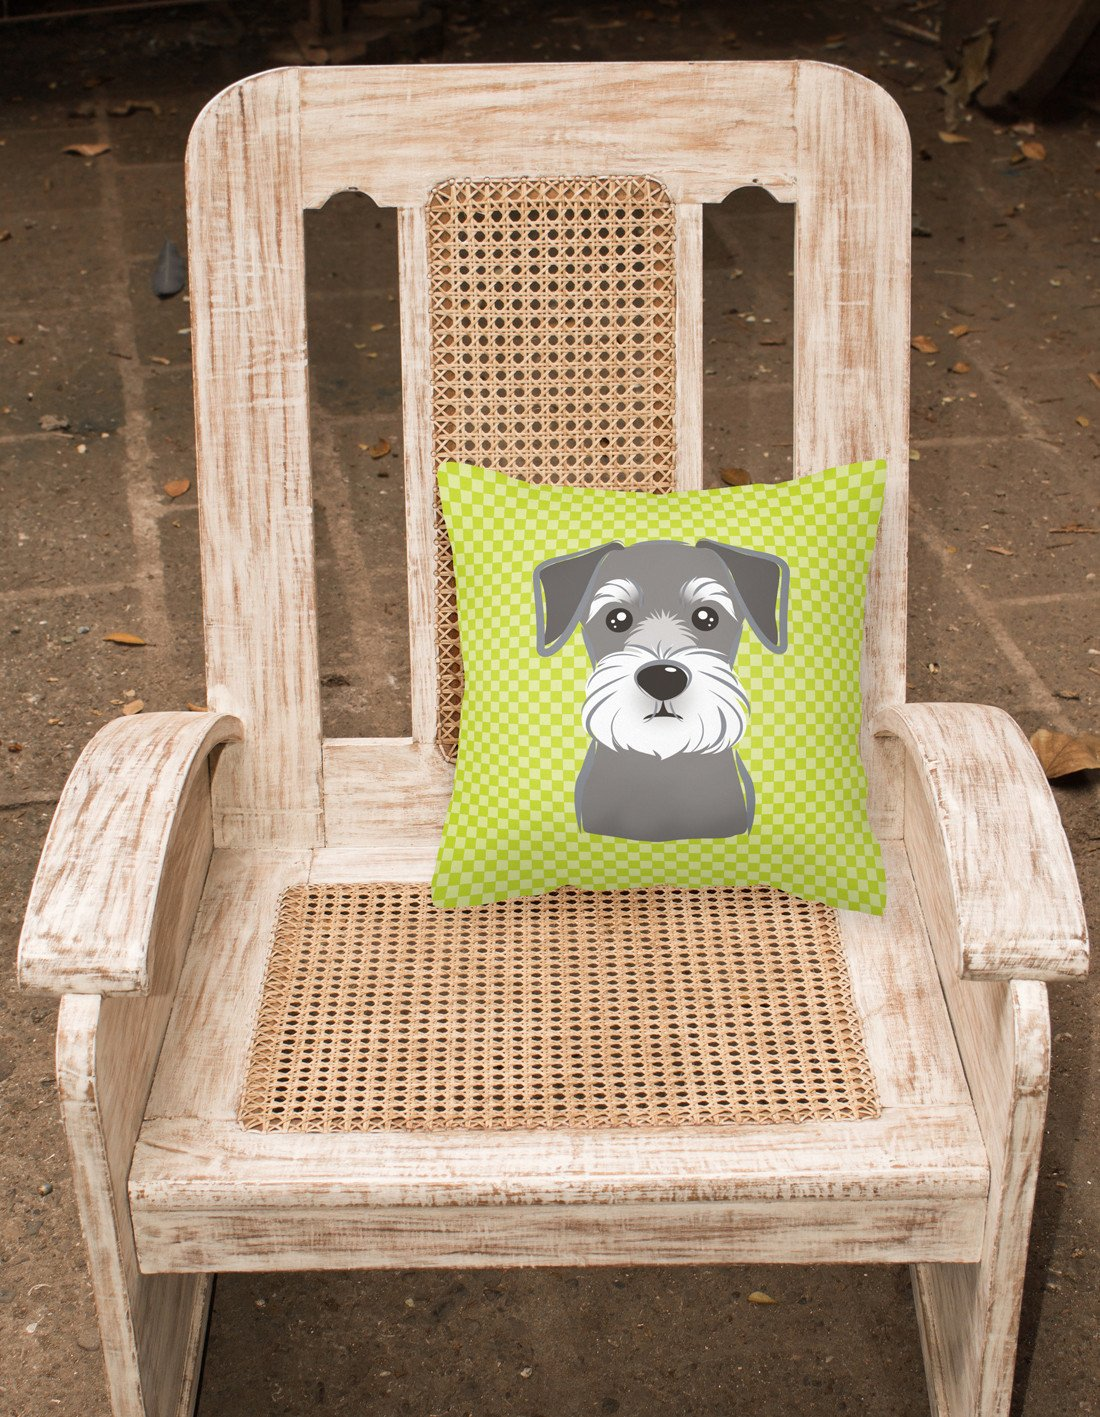 Checkerboard Lime Green Schnauzer Canvas Fabric Decorative Pillow BB1268PW1414 - the-store.com